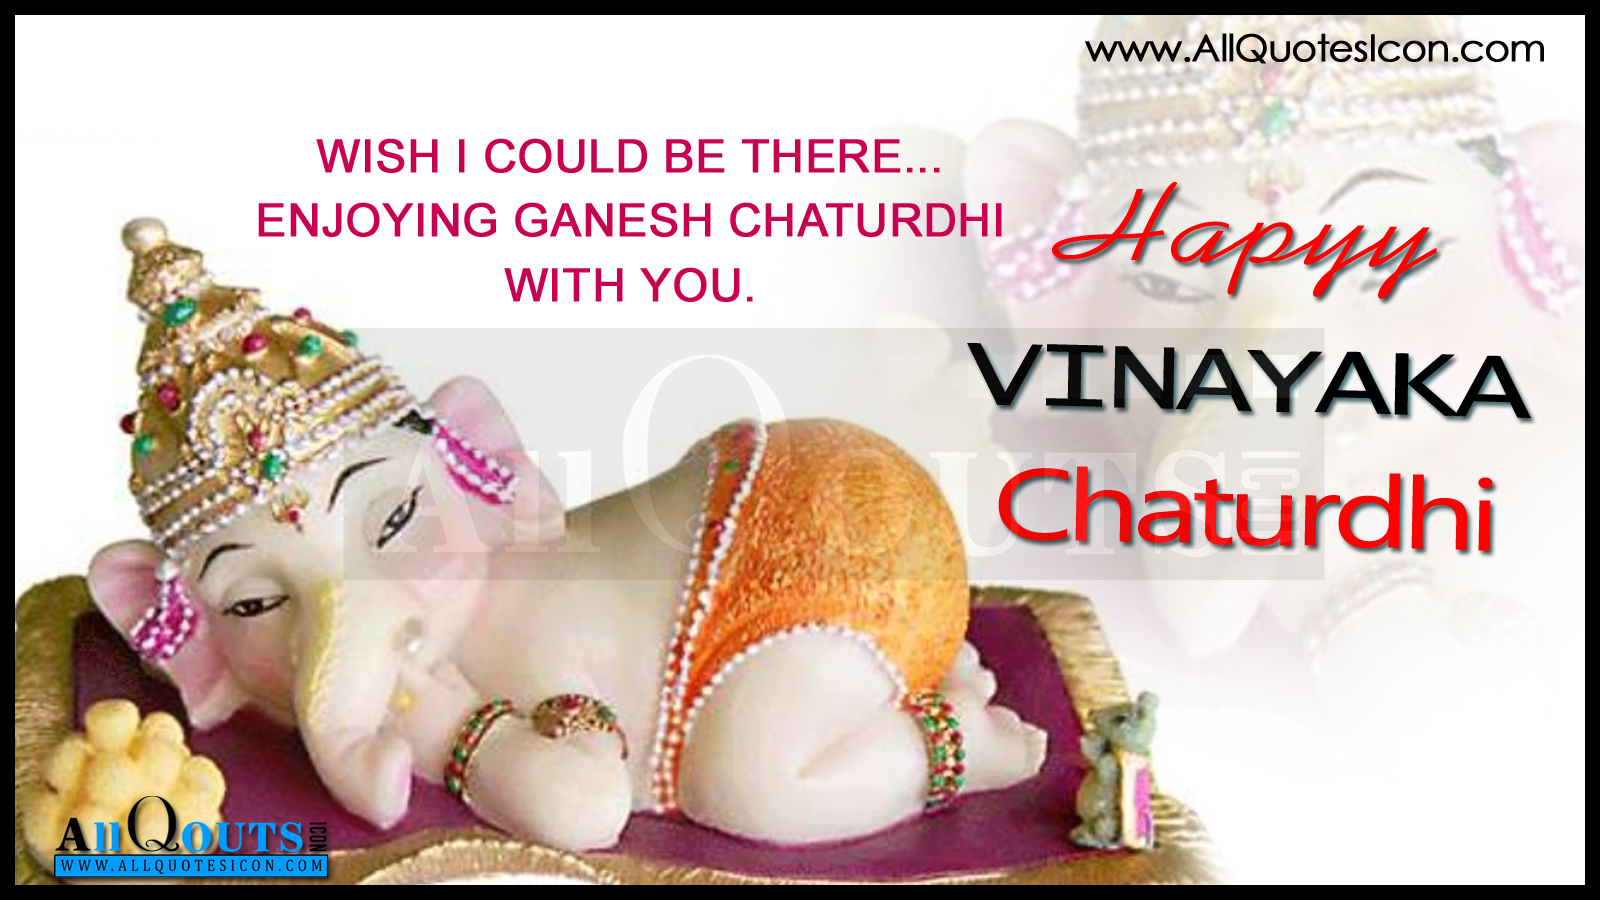 Vinayaka Chavithi Subhakamkshalu And Greetings In English With Nice